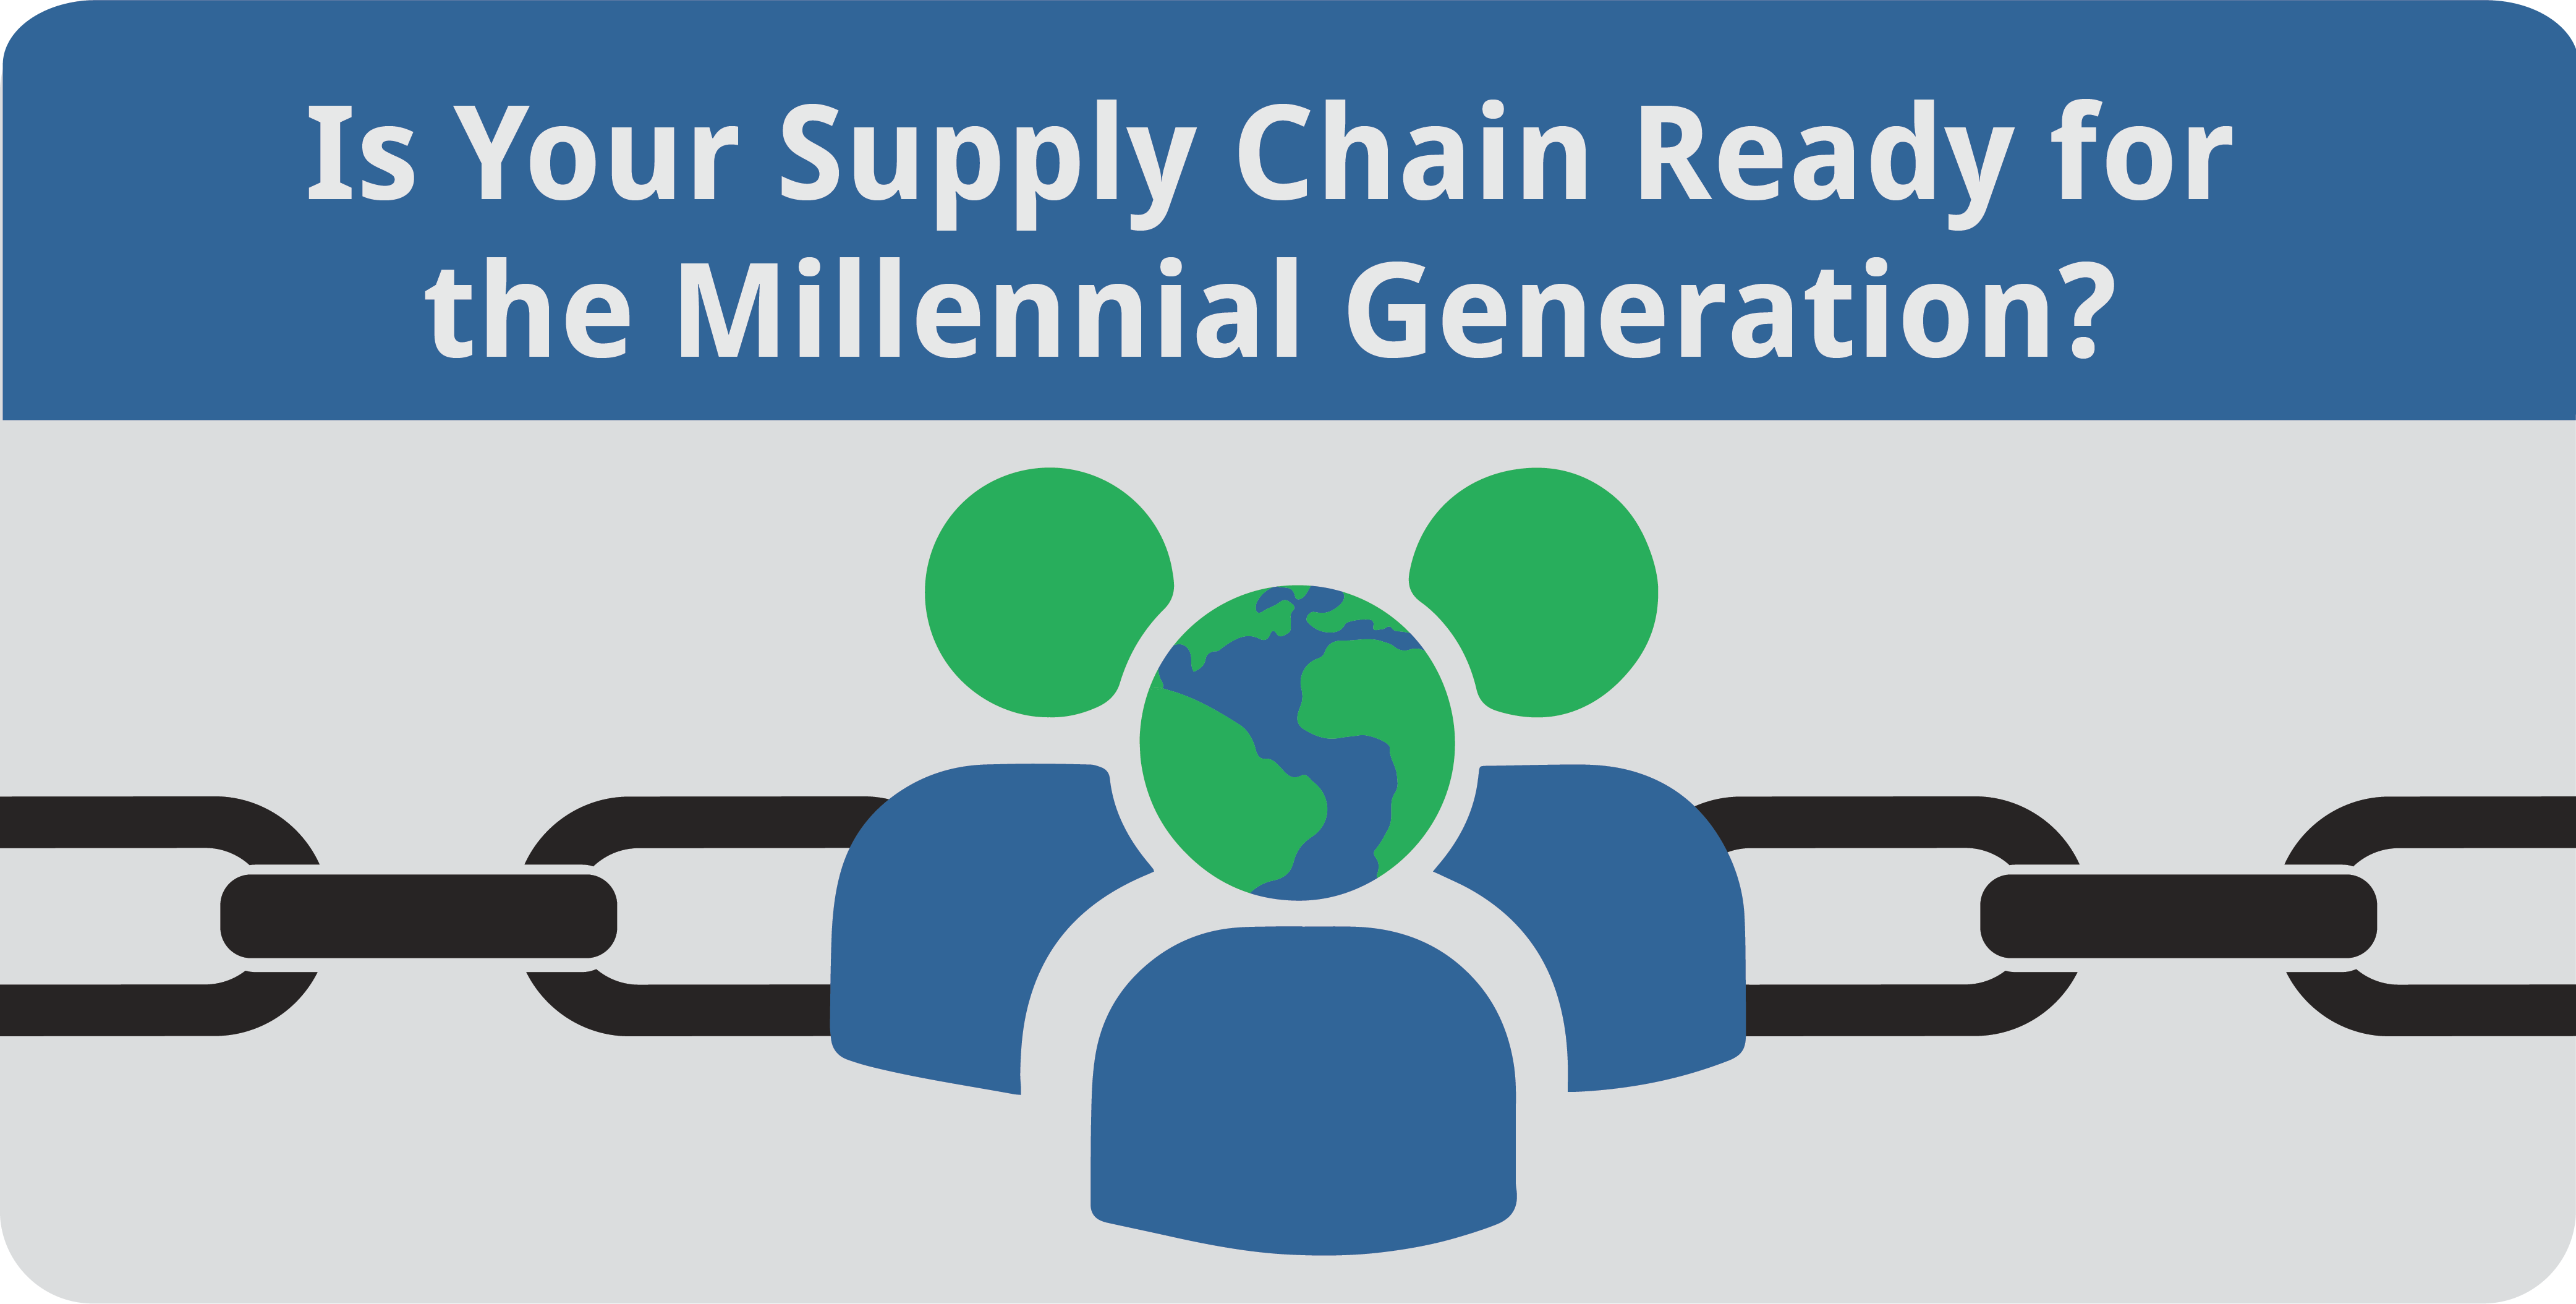 Millennial Generation and the Supply Chain